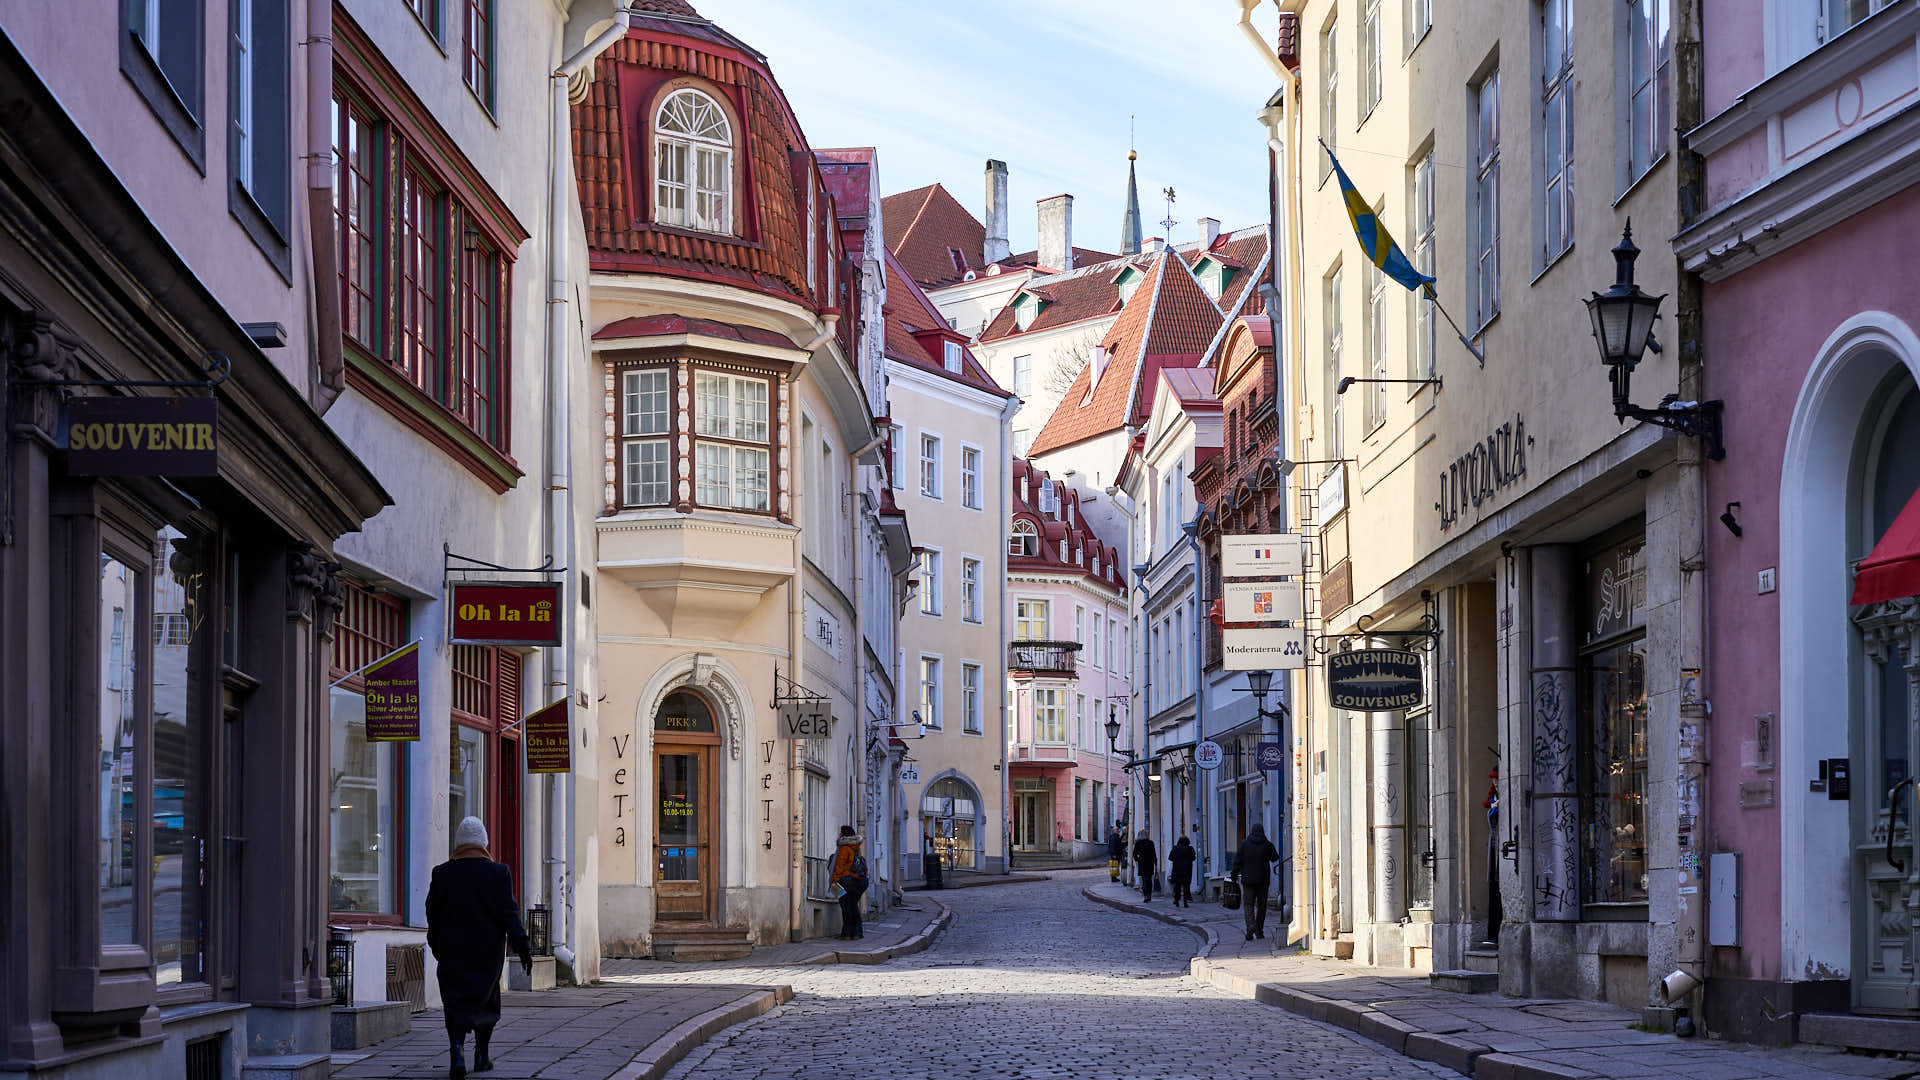 Street in the Old Town of Tallinn